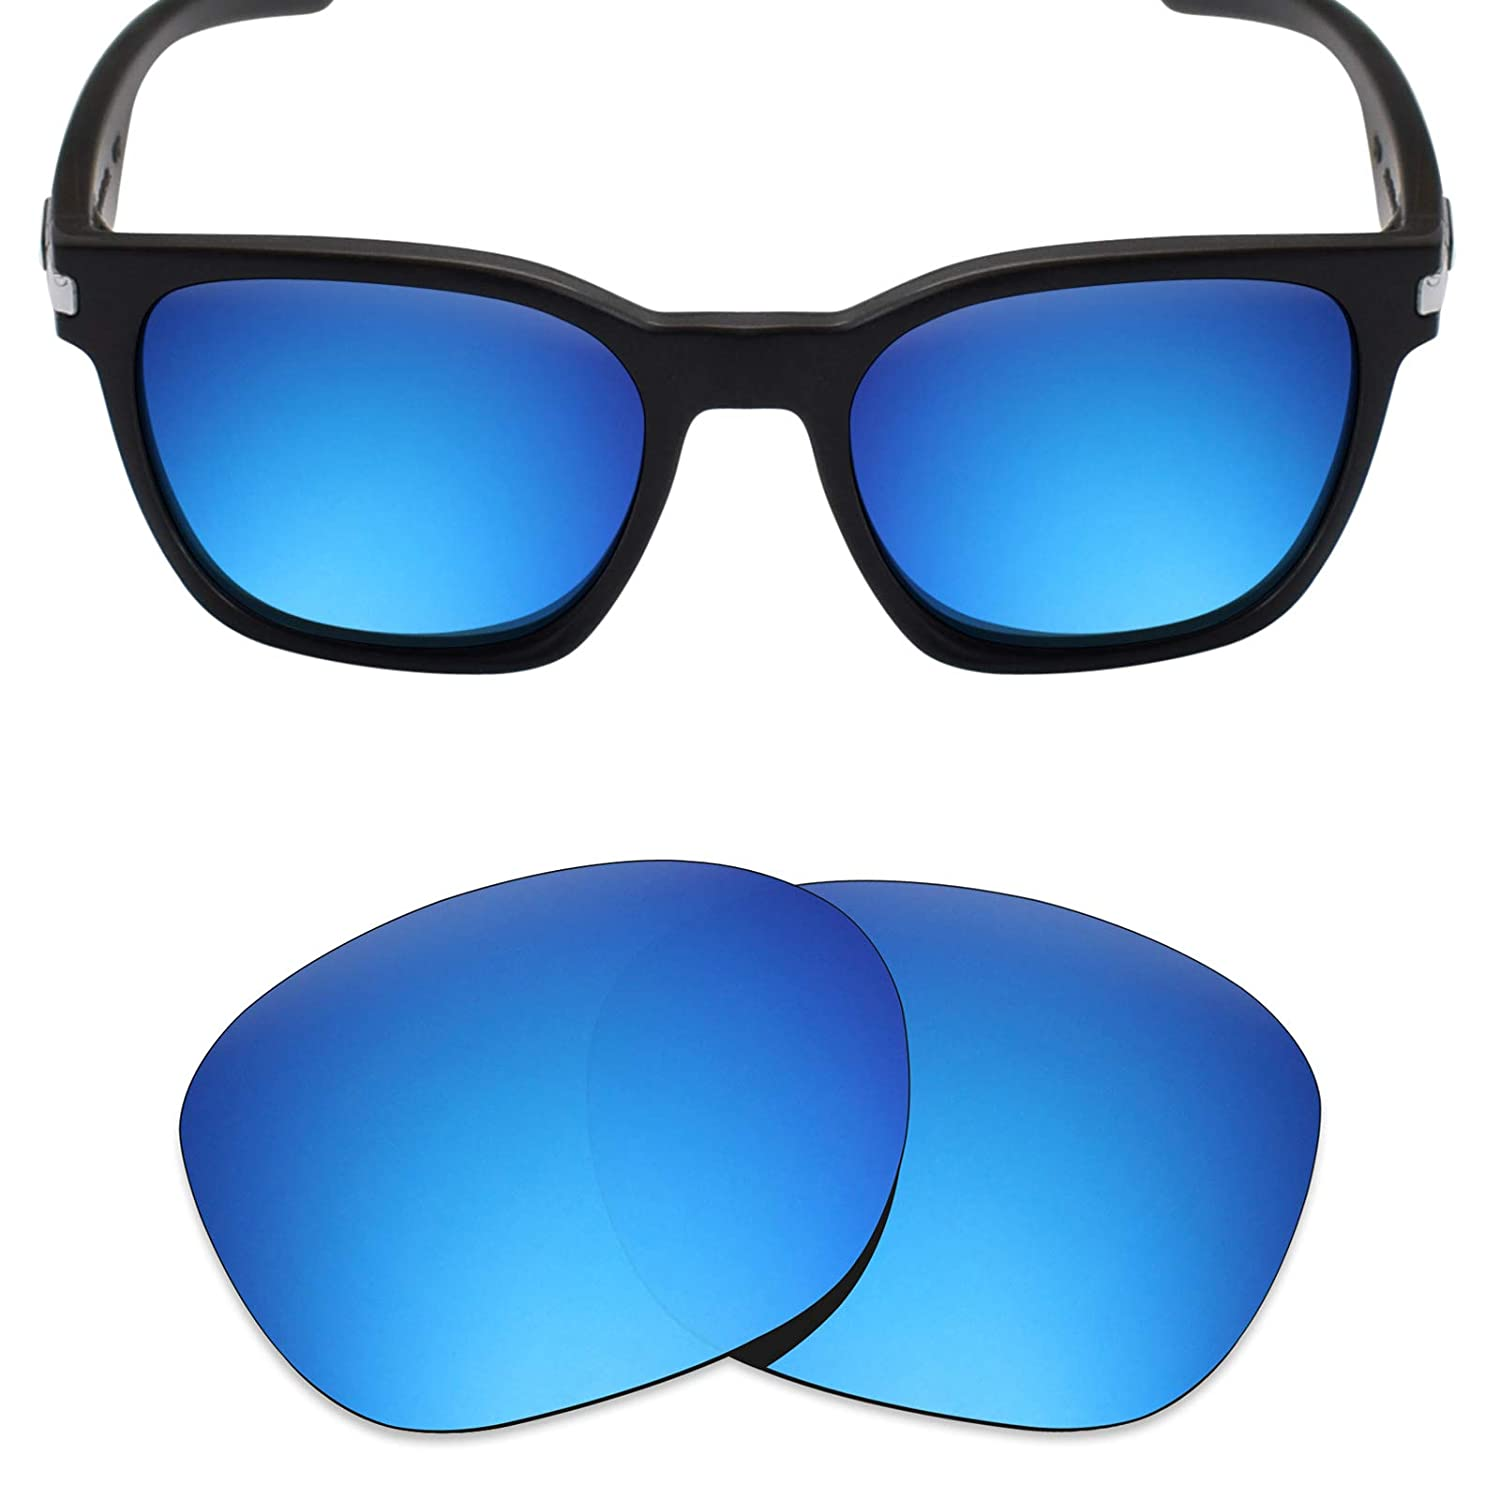 92853abb9c Mryok Replacement Lenses for Oakley Garage Rock - Options MryLens  OY045GHC03SC